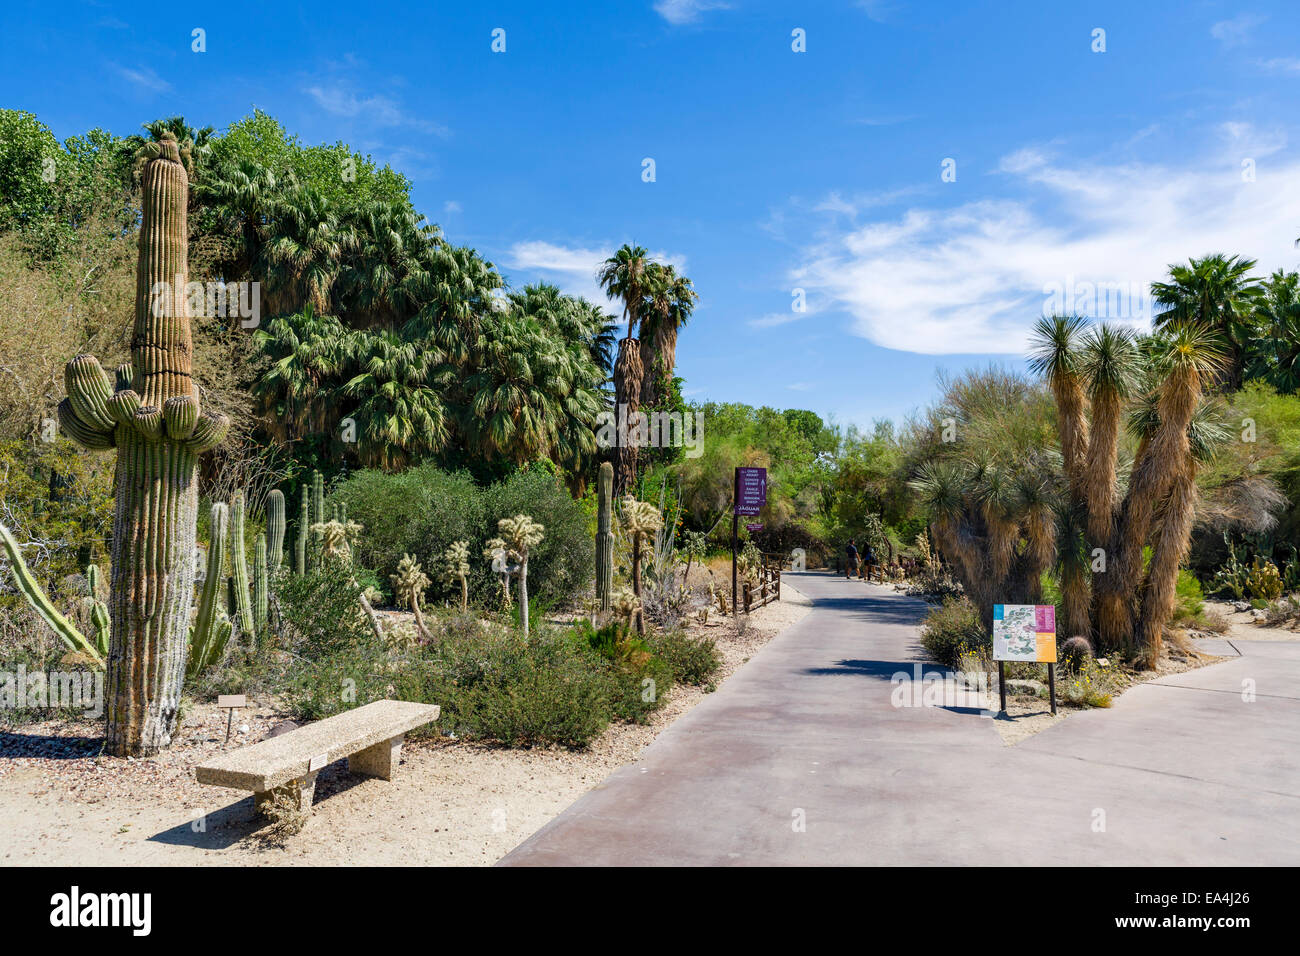 Living Desert Zoo and Gardens, Palm Desert, Riverside County, Southern California, USA - Stock Image